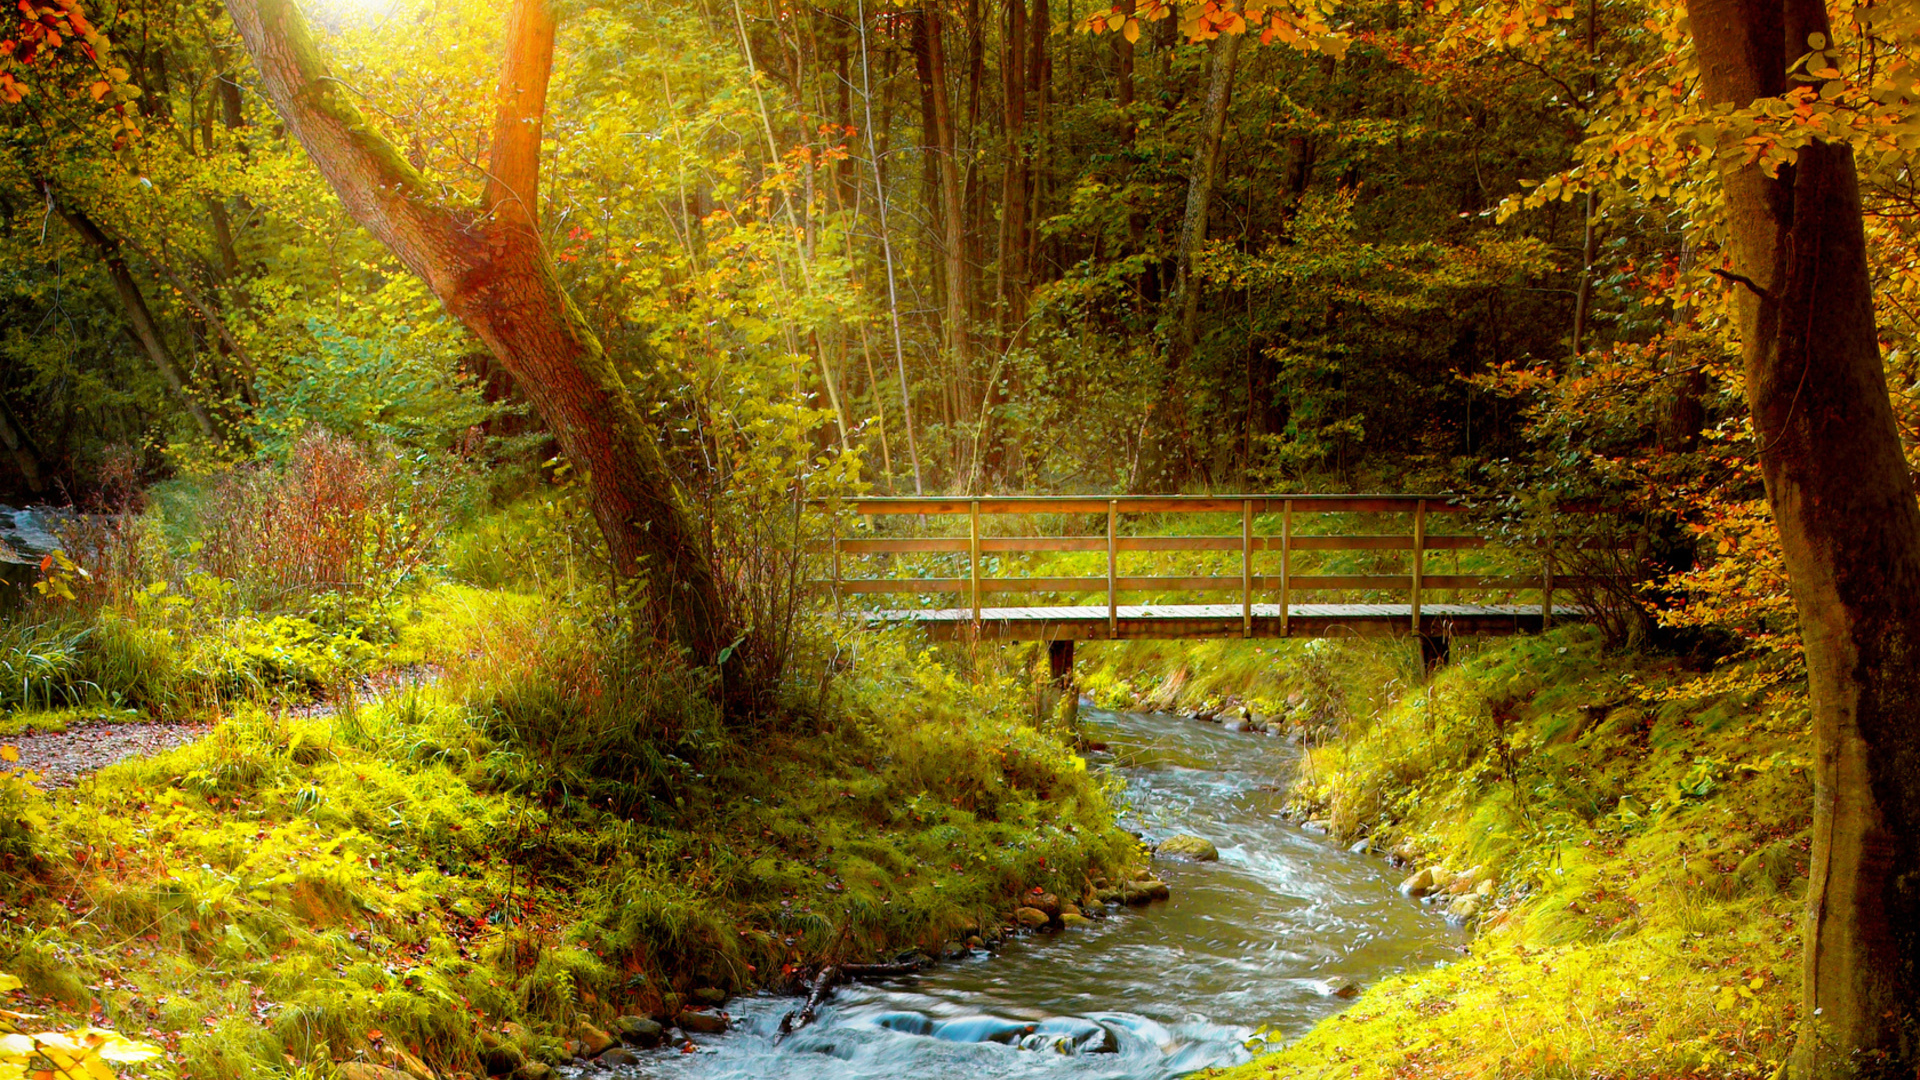 Iphone 6 Wallpaper Fall Leaves Bridge Full Hd Wallpaper And Background Image 1920x1080